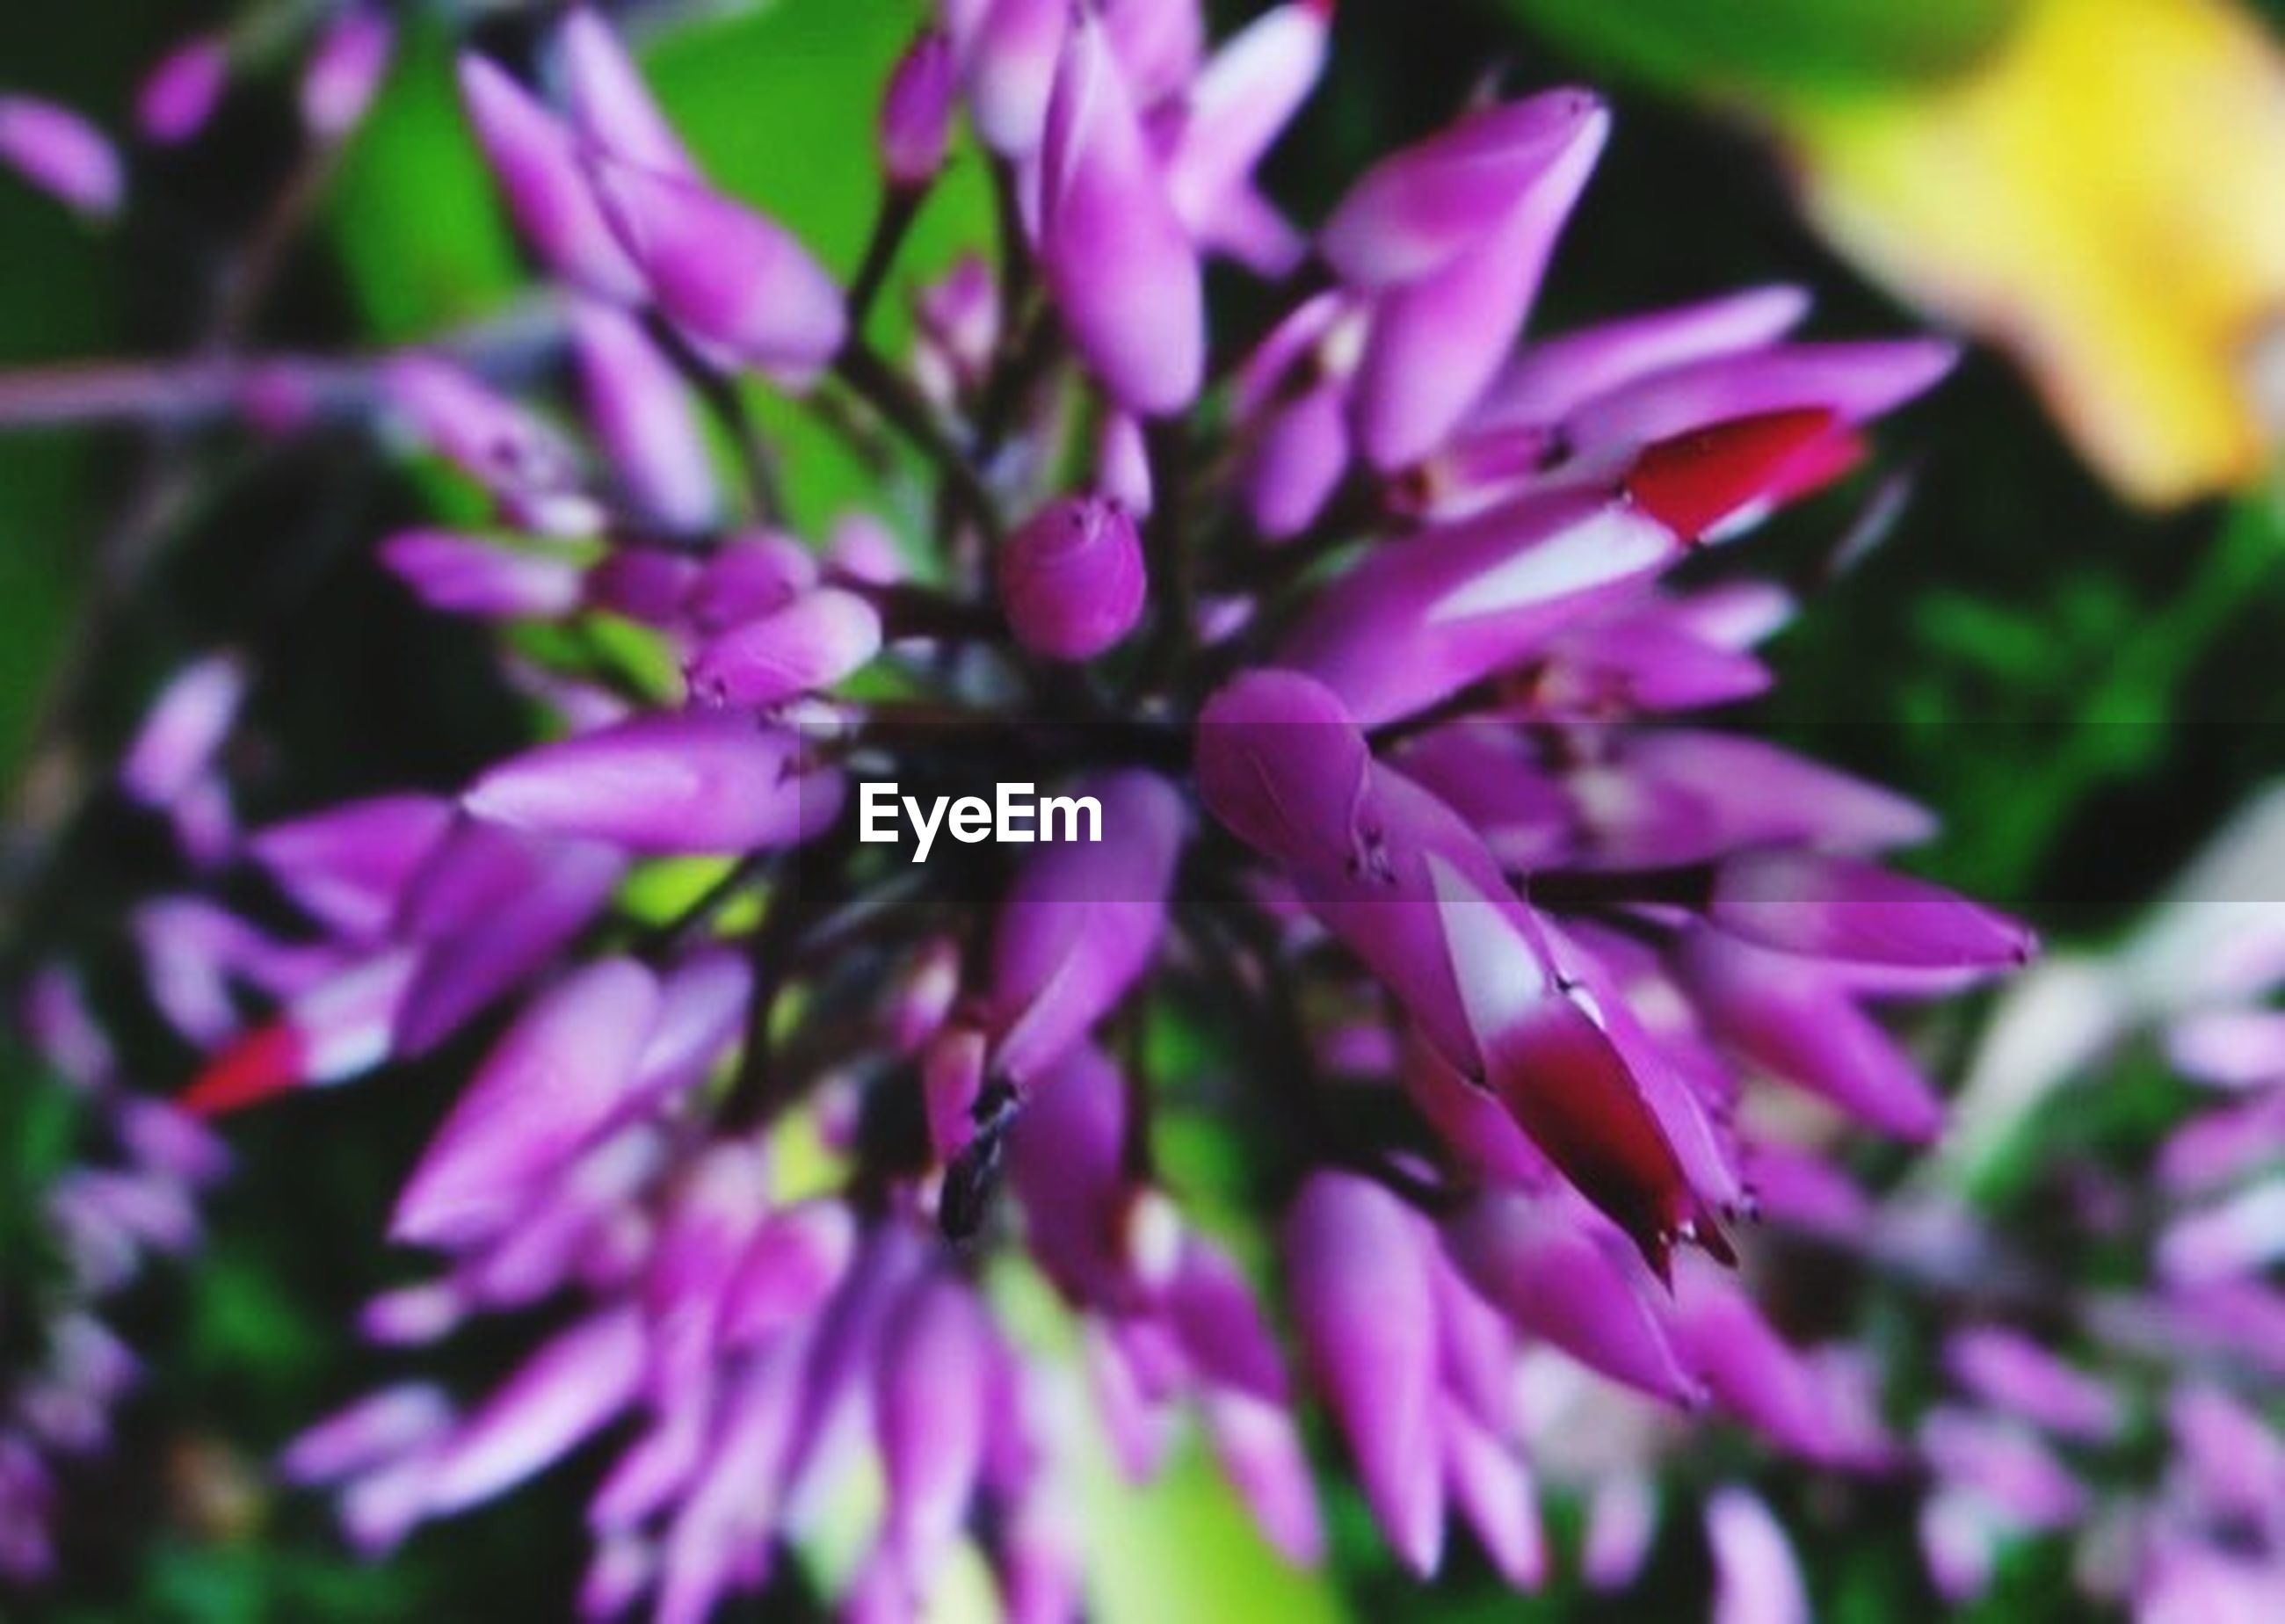 flower, freshness, petal, fragility, growth, close-up, beauty in nature, focus on foreground, flower head, purple, nature, selective focus, blooming, plant, pink color, in bloom, outdoors, day, park - man made space, no people